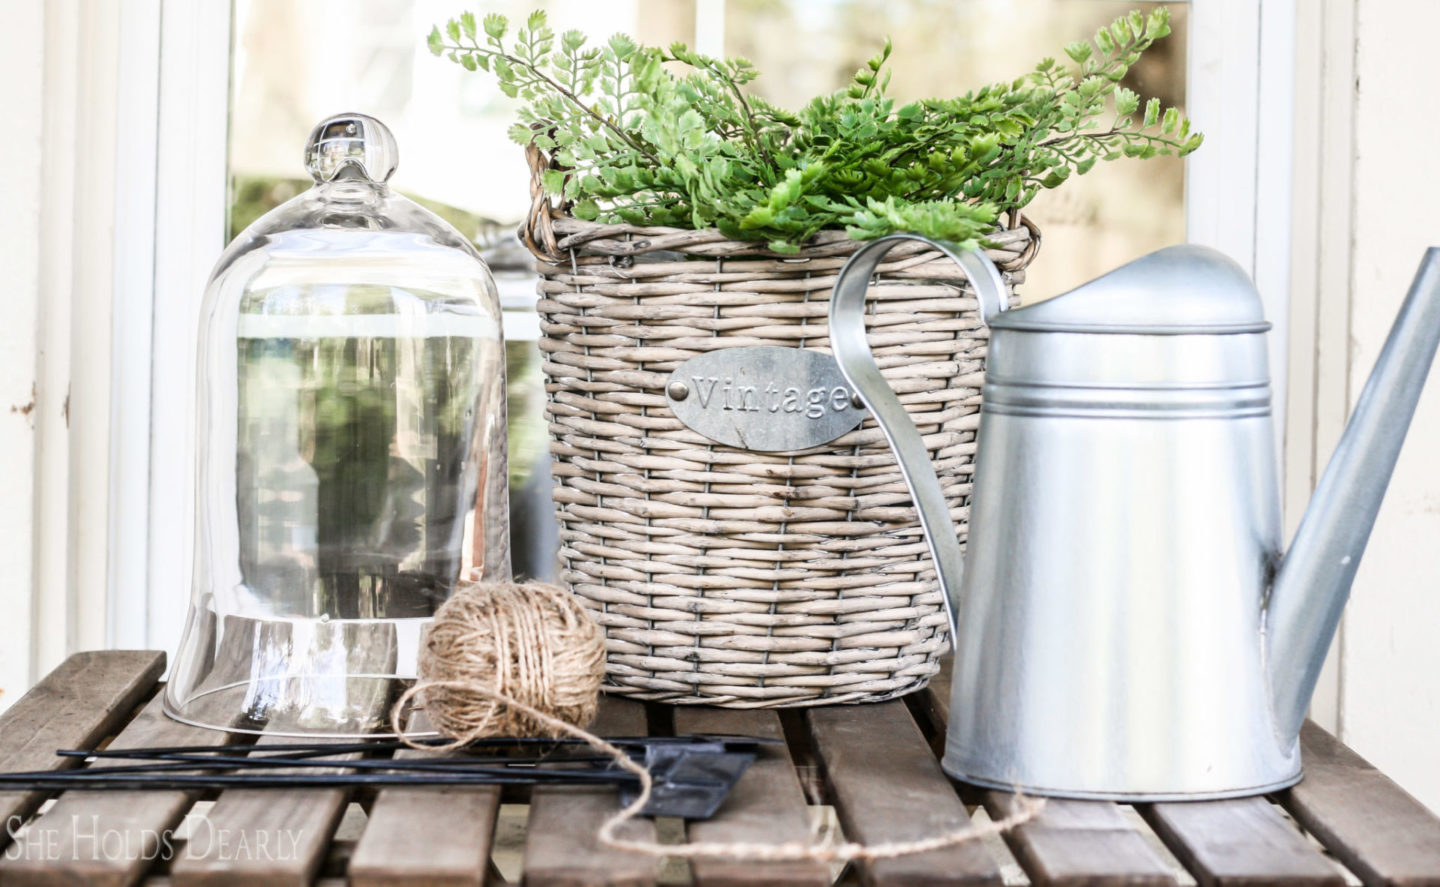 Cloches for Spring by sheholdsdearly.com